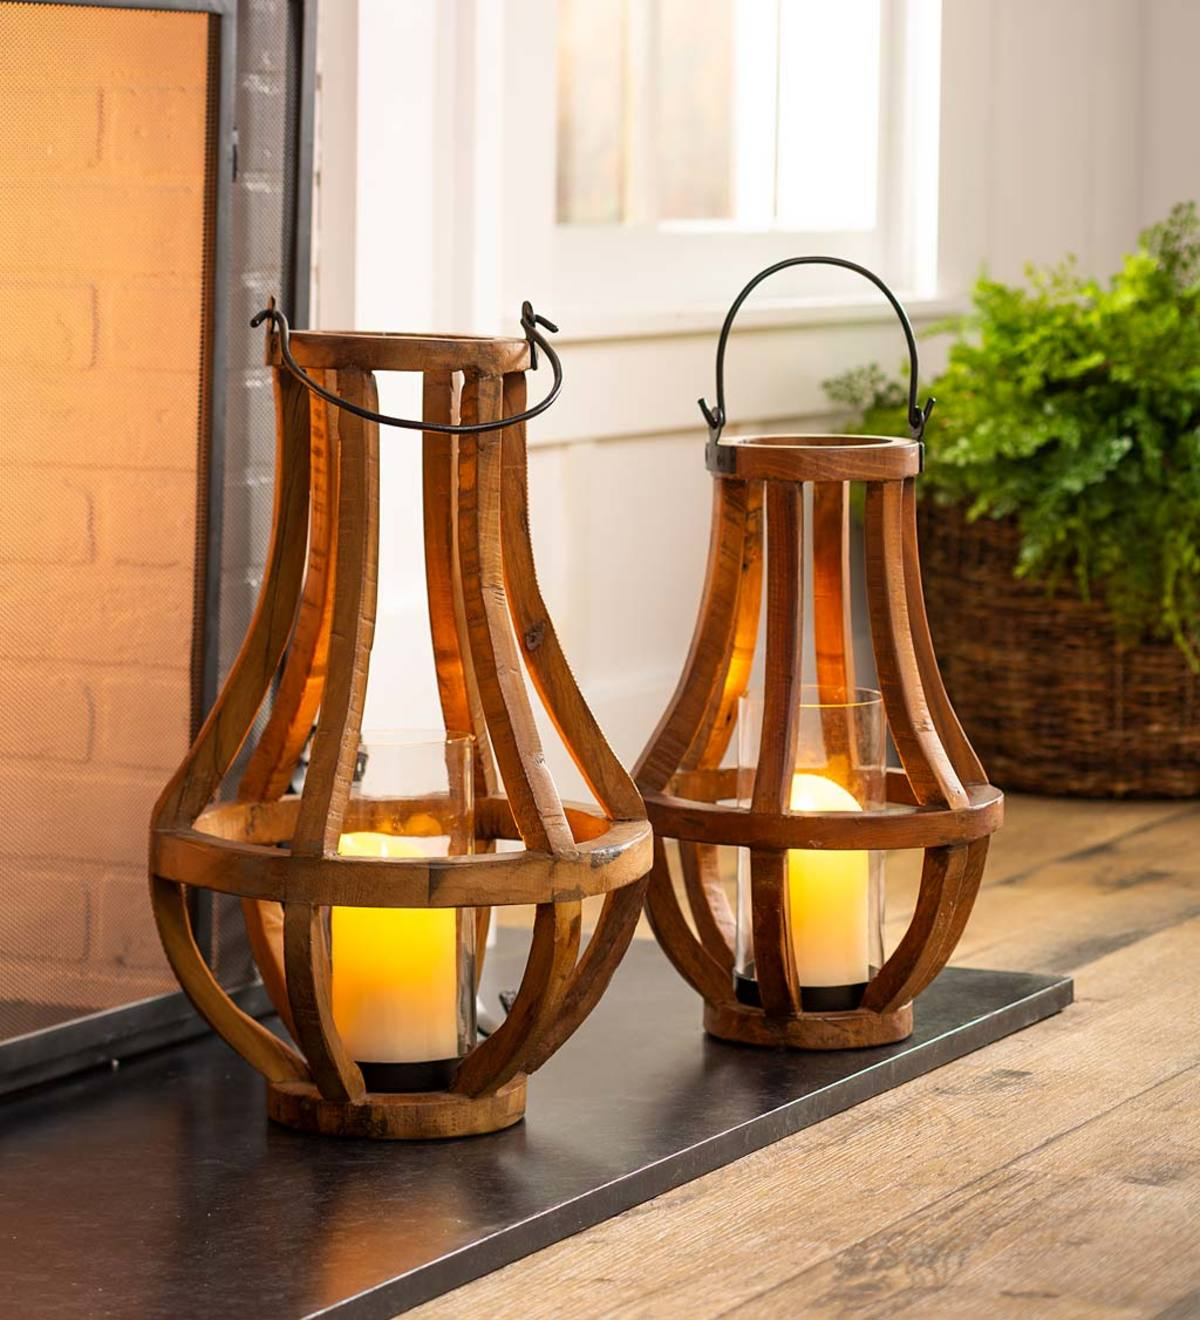 Artisanal Reclaimed Wood Lanterns With Glass Cylinder Plowhearth